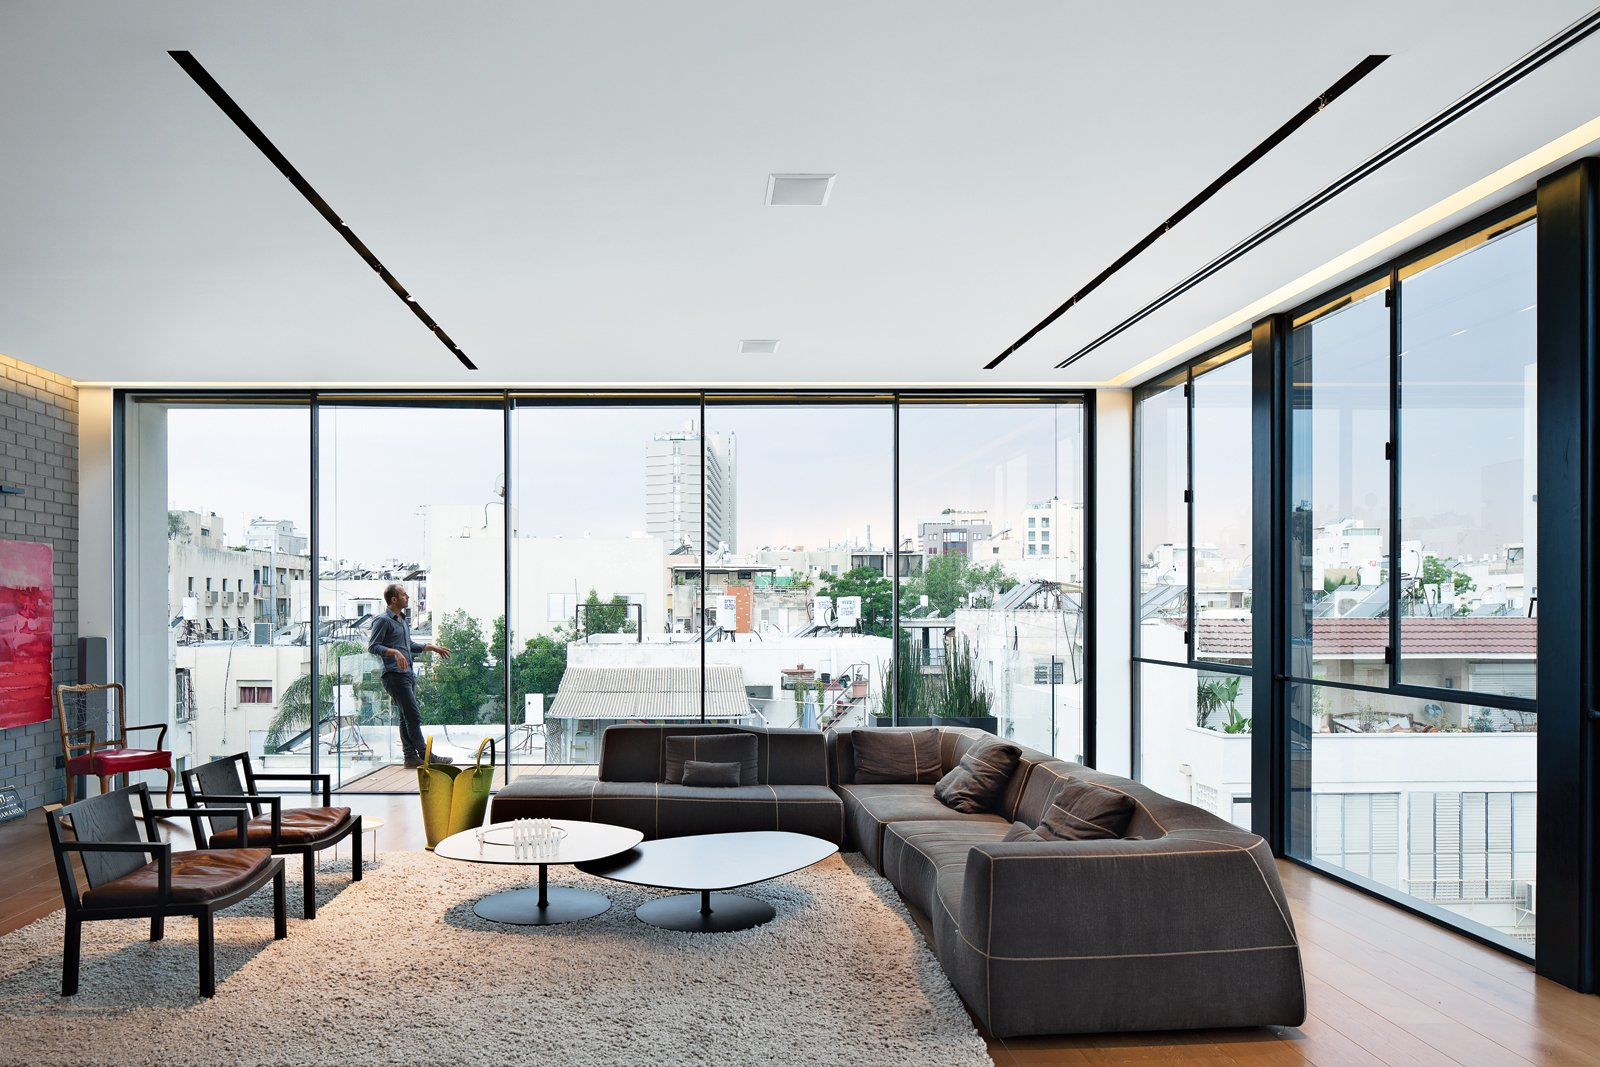 Living Room, Sectional, Light Hardwood Floor, Rug Floor, Chair, and Coffee Tables The living room features stunning views of the city, a Bend sofa and Phoenix coffee tables, both by Patricia Urquiola for B&B Italia and Moroso, respectively, and two Gray armchairs by Piero Lissoni for Living Divani.  20 Homes with Inspiring use of Glass by Diana Budds from Modern High-Rise Town House in Tel Aviv